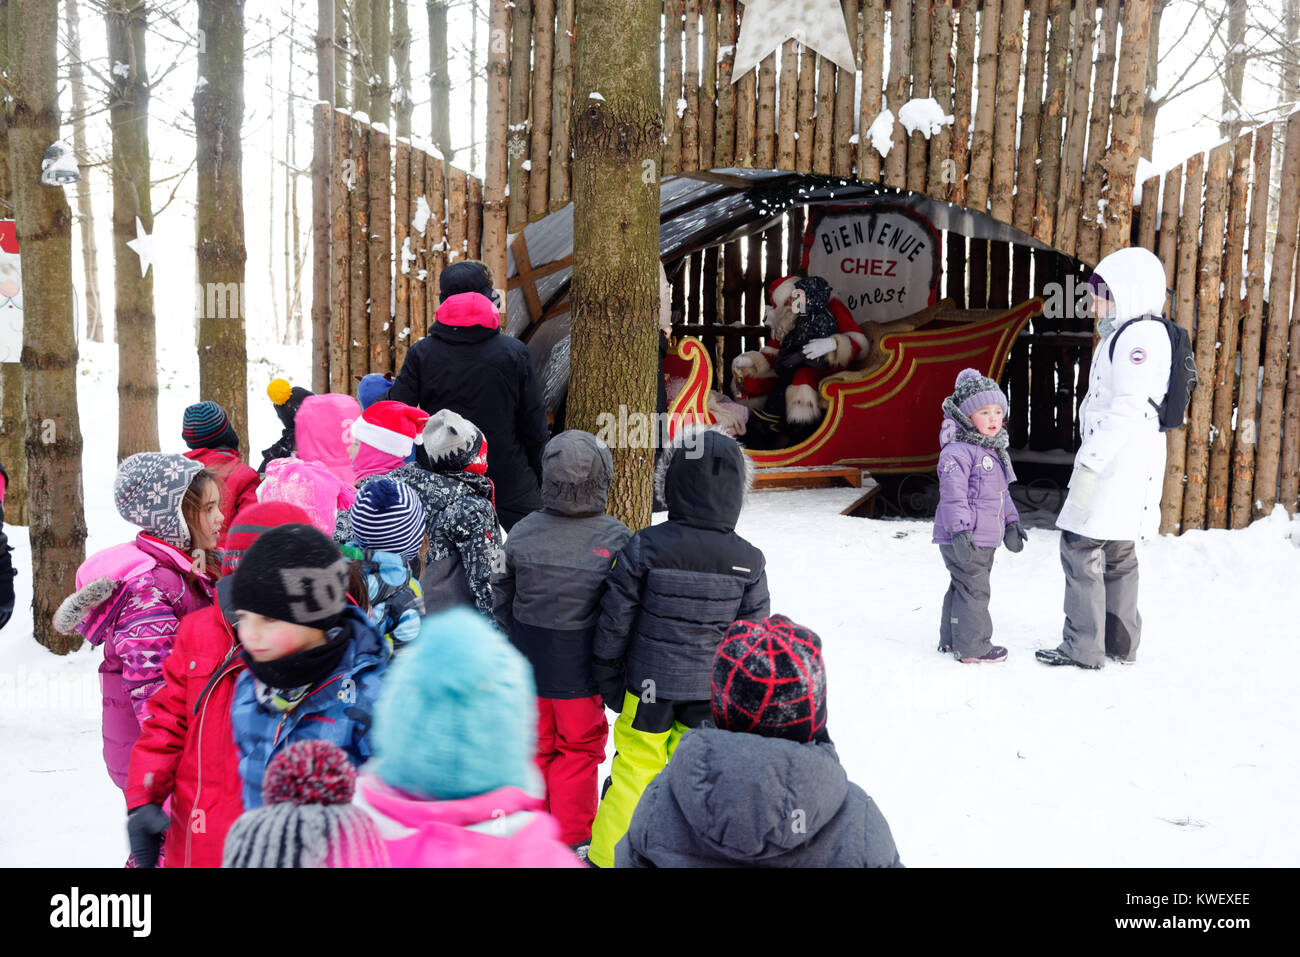 A queue of children waiting in a forest to see father christmas on a achool visit in Quebec. It was -24C. - Stock Image